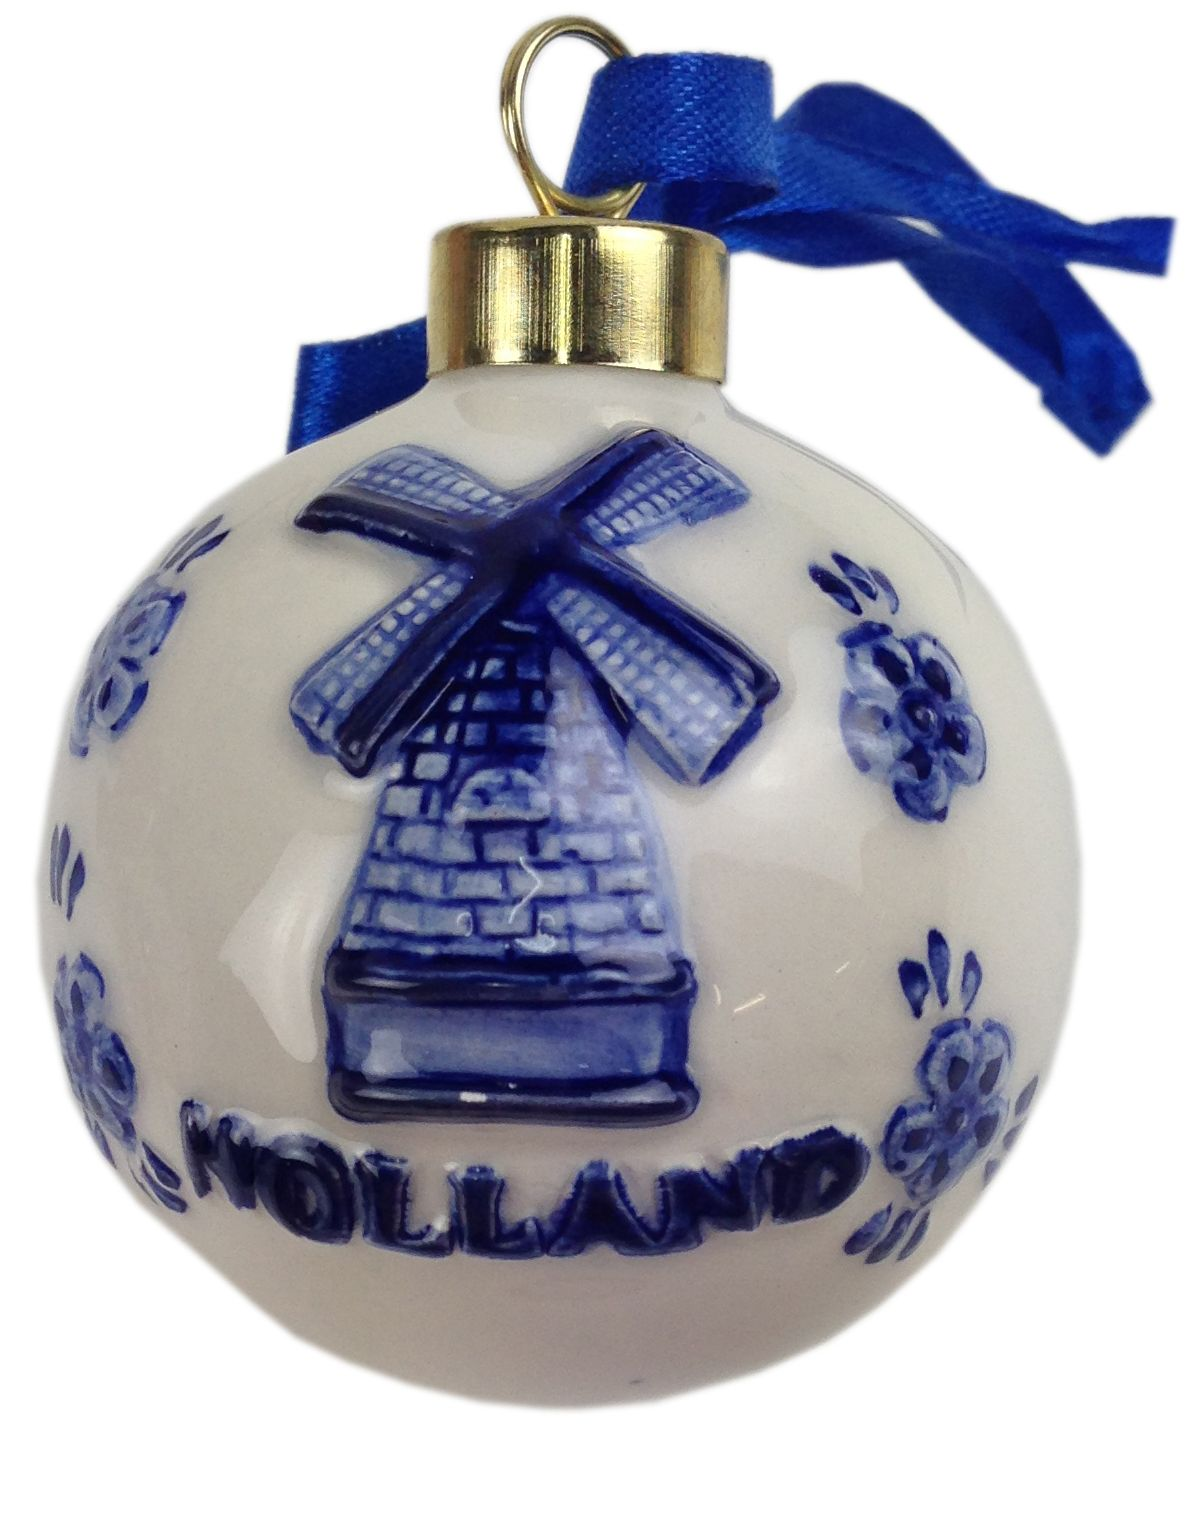 Delft Blue Christmas Bauble Dutch Windmill Blue Christmas Ornaments Blue Christmas Tree Decorative Pillows Christmas